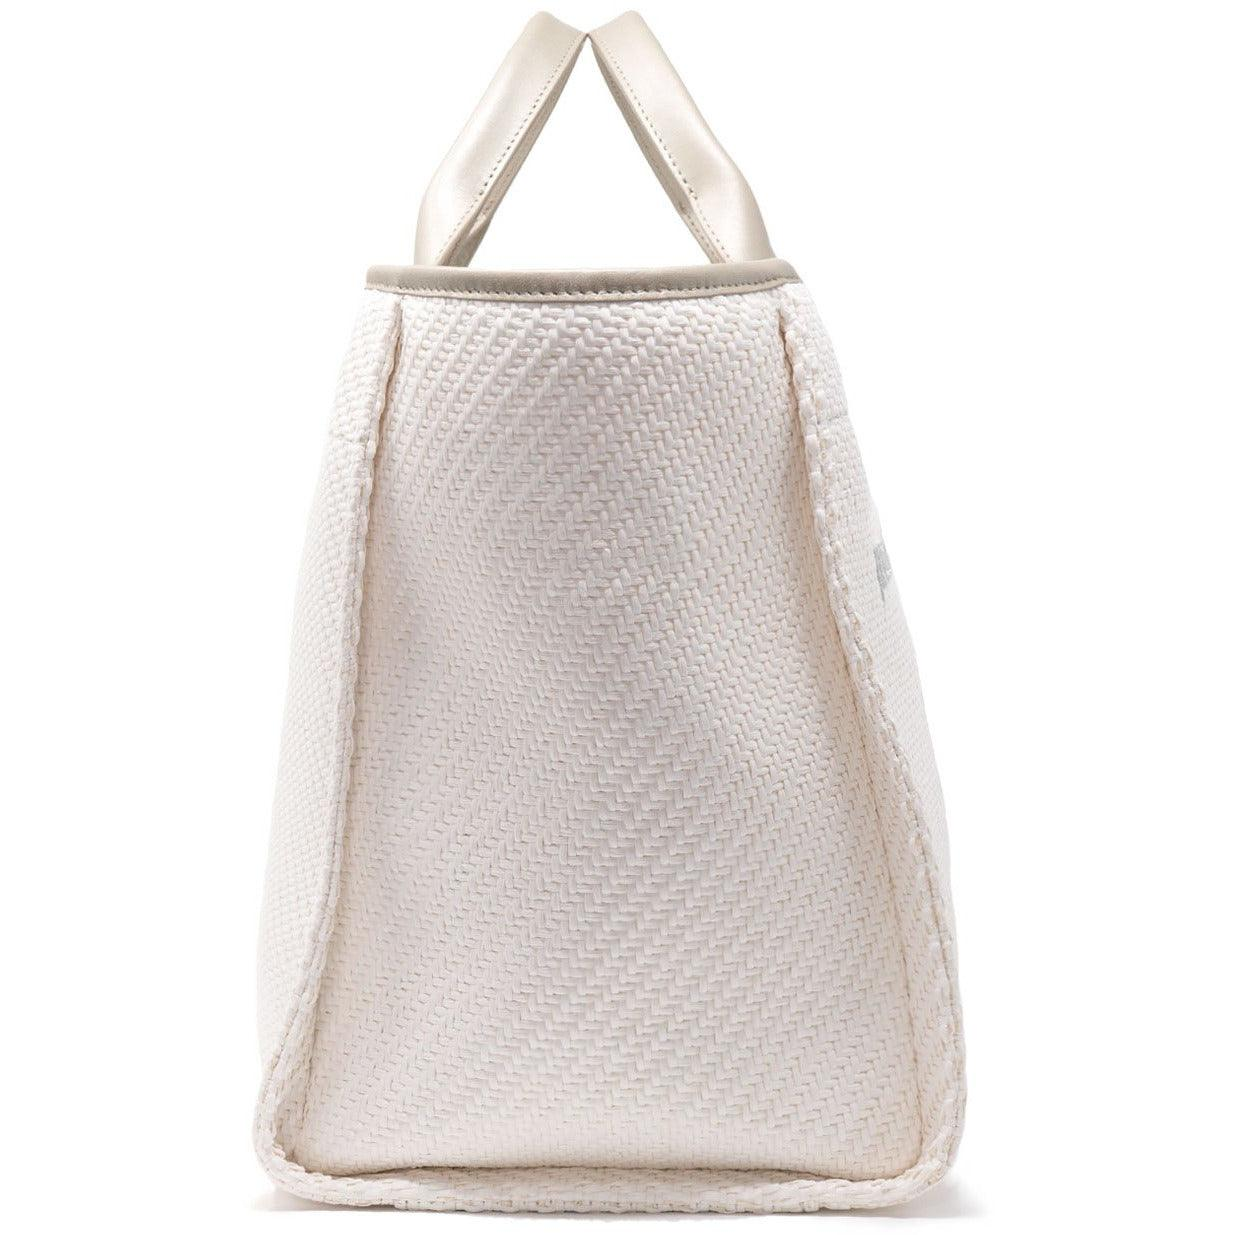 The Hamptons Large Shopping Bag in Pearl Beige